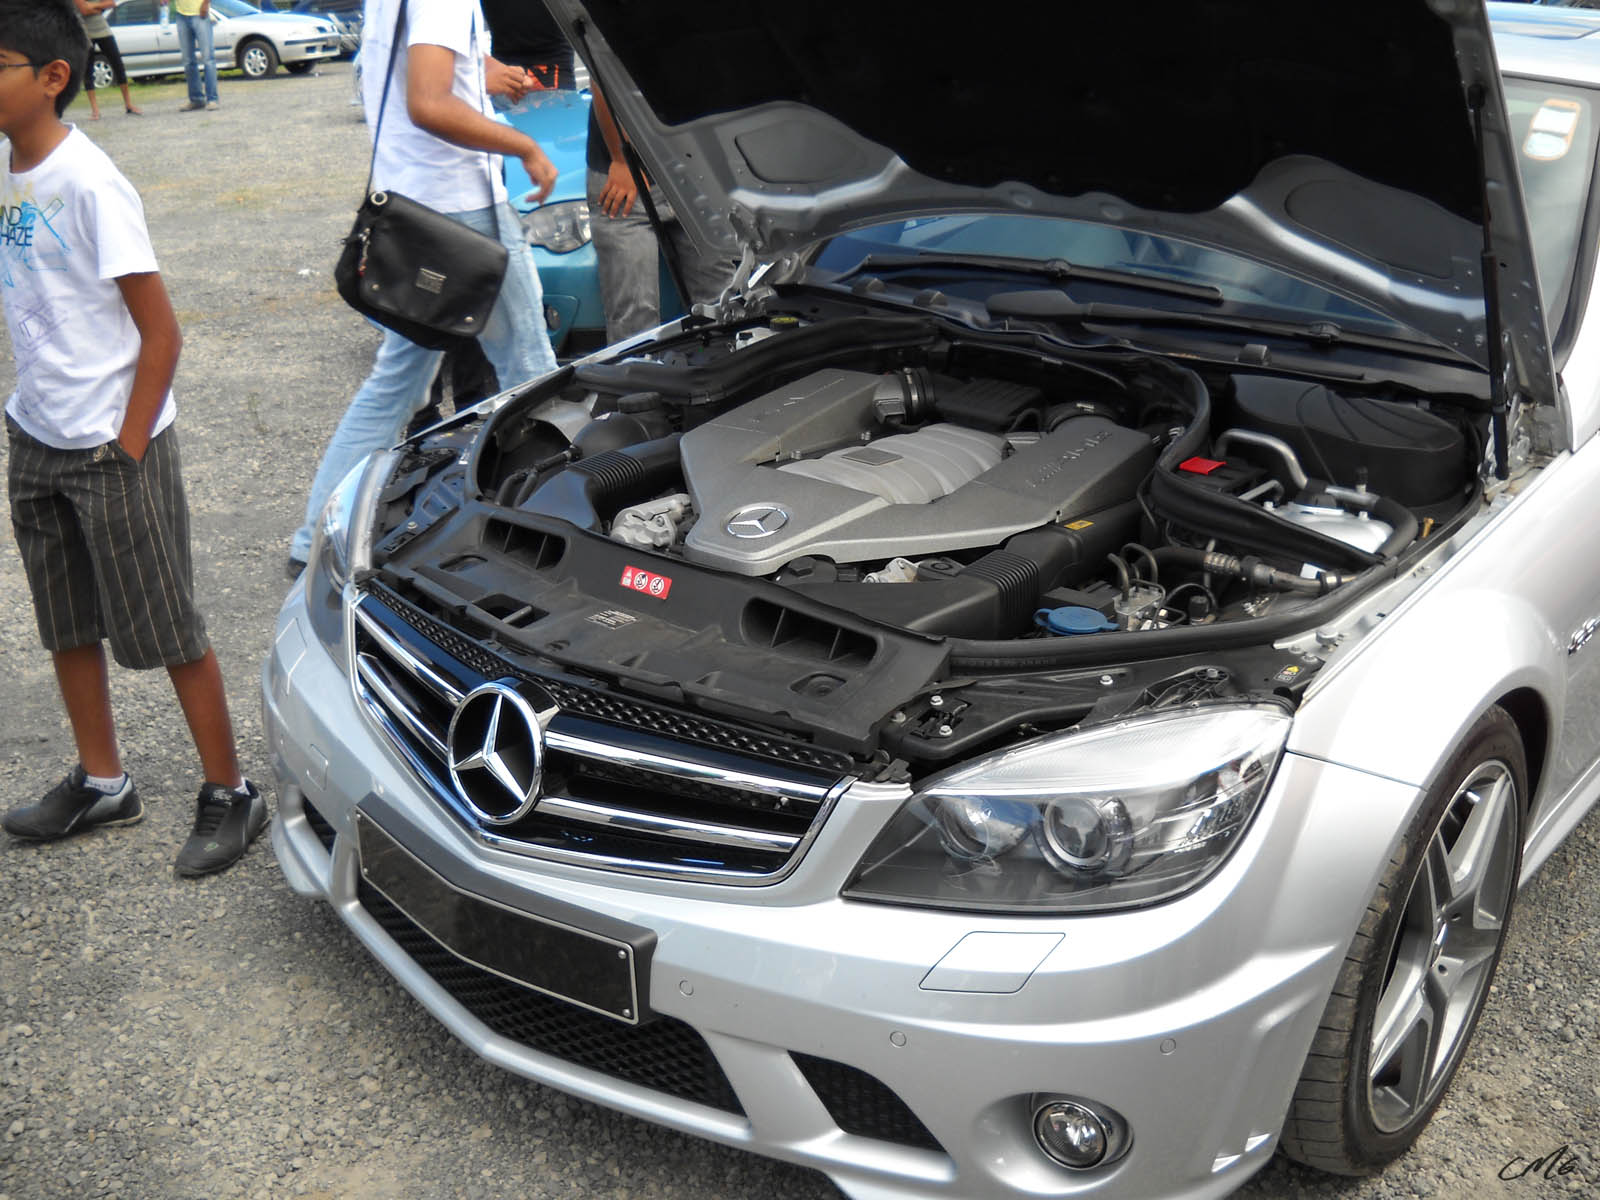 Mercedes Benz C63 Amg Wiki >> File:Mercedes-Benz M156-M159 engine, carrotmadman6-101.jpg - Wikimedia Commons